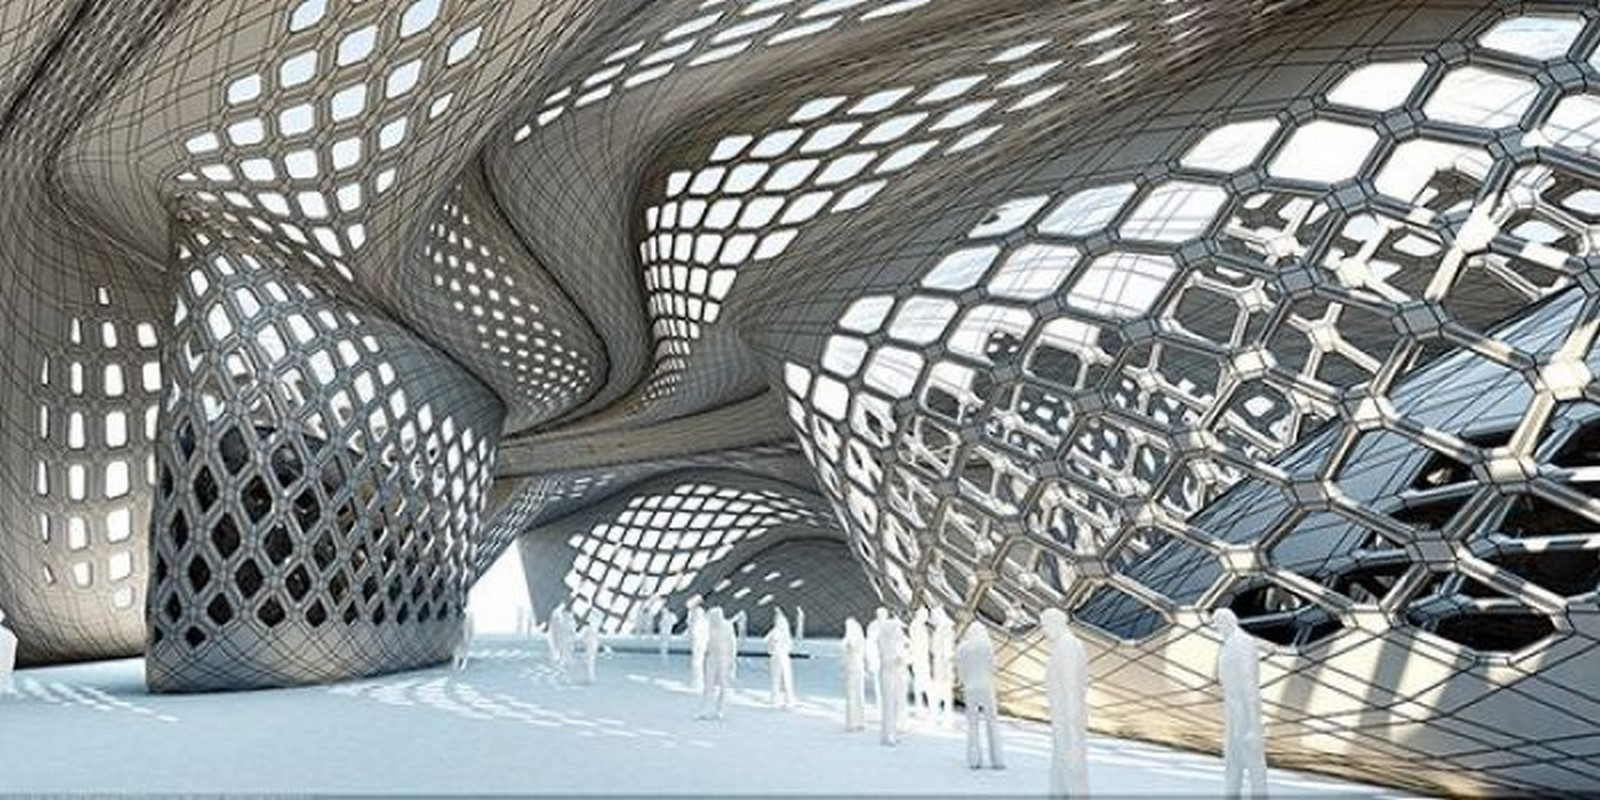 What Effect Would Generative Design Have on Architecture? - Sheet6